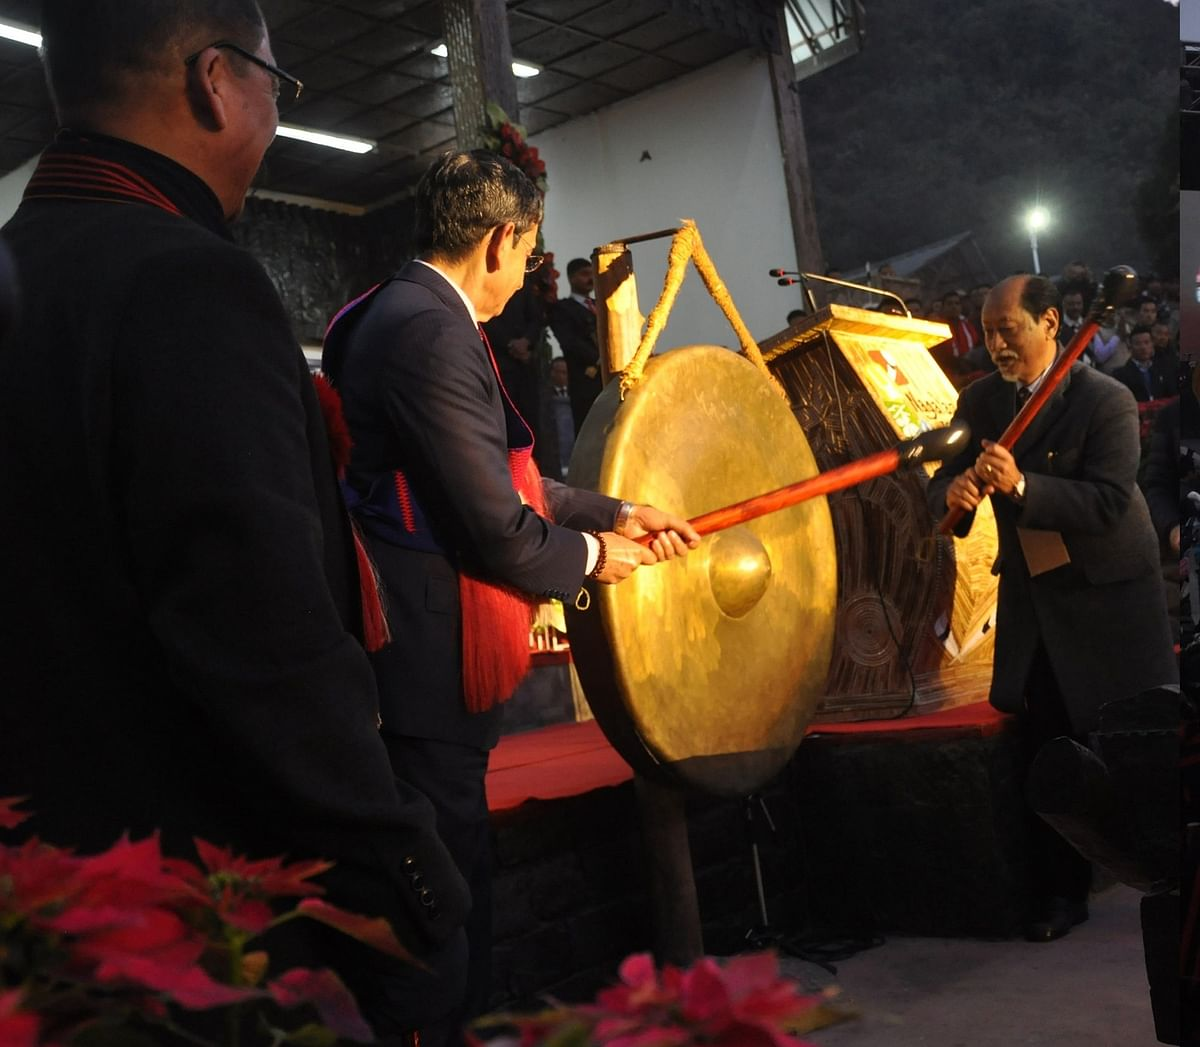 The festival was declared open following the hitting of traditional gongs by Nagaland governor RN Ravi and chief minister Neiphiu Rio